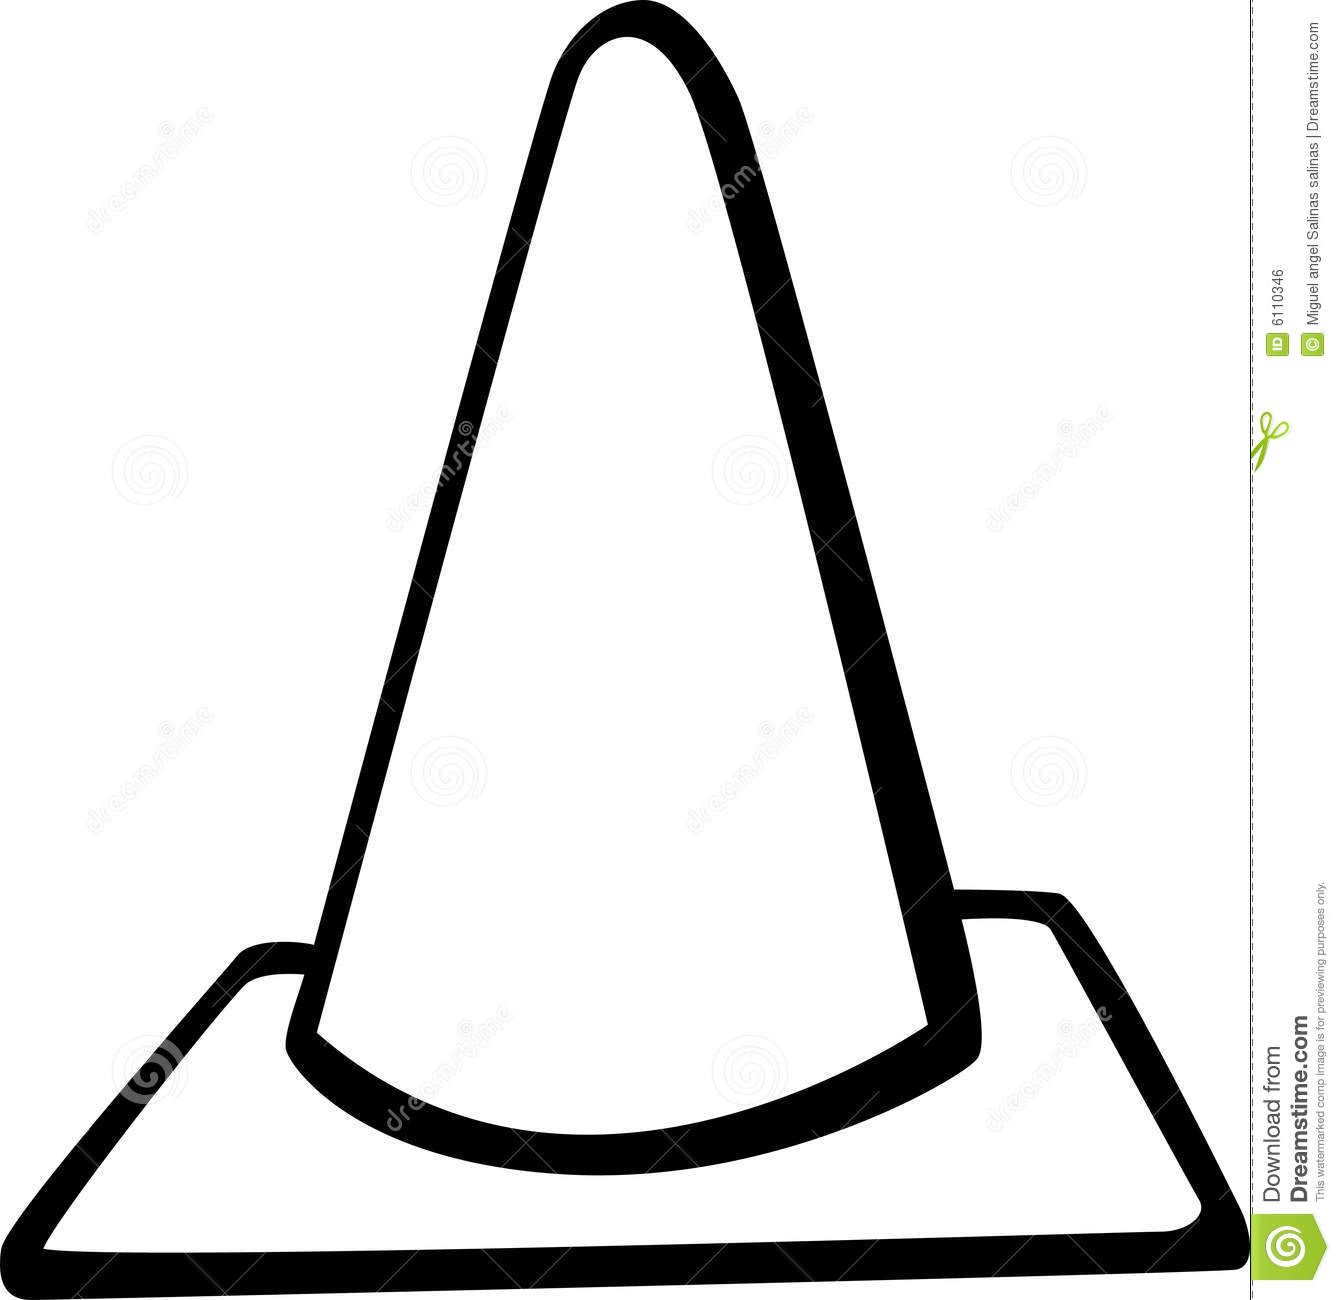 Traffic Cone Road Signal Vector Illustration Royalty Free Stock Image